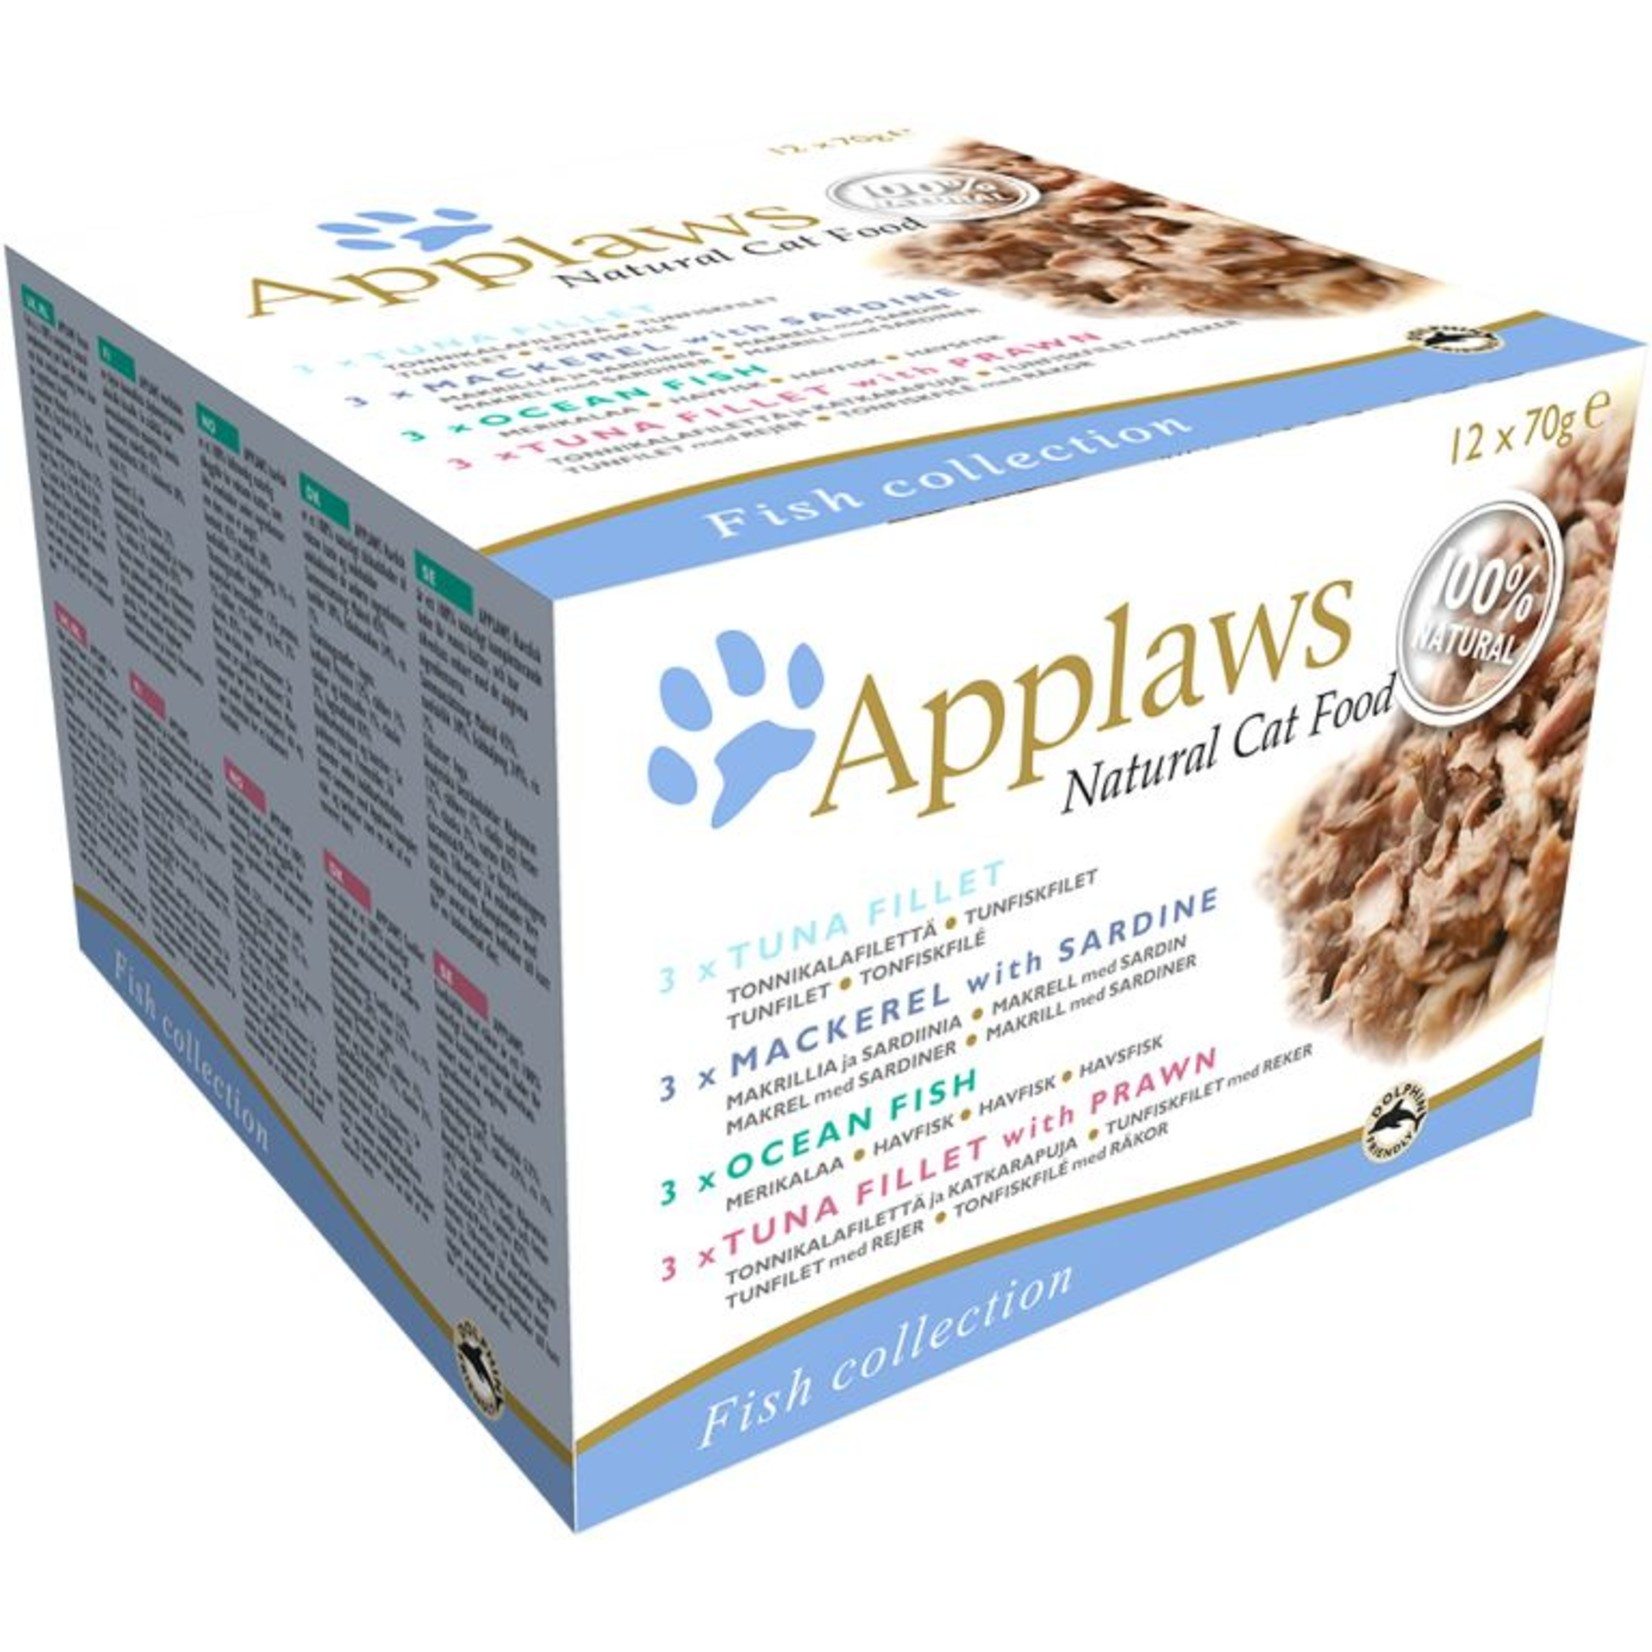 Applaws Cat Wet Food Deluxe Fish Selection Box, 12 x 70g